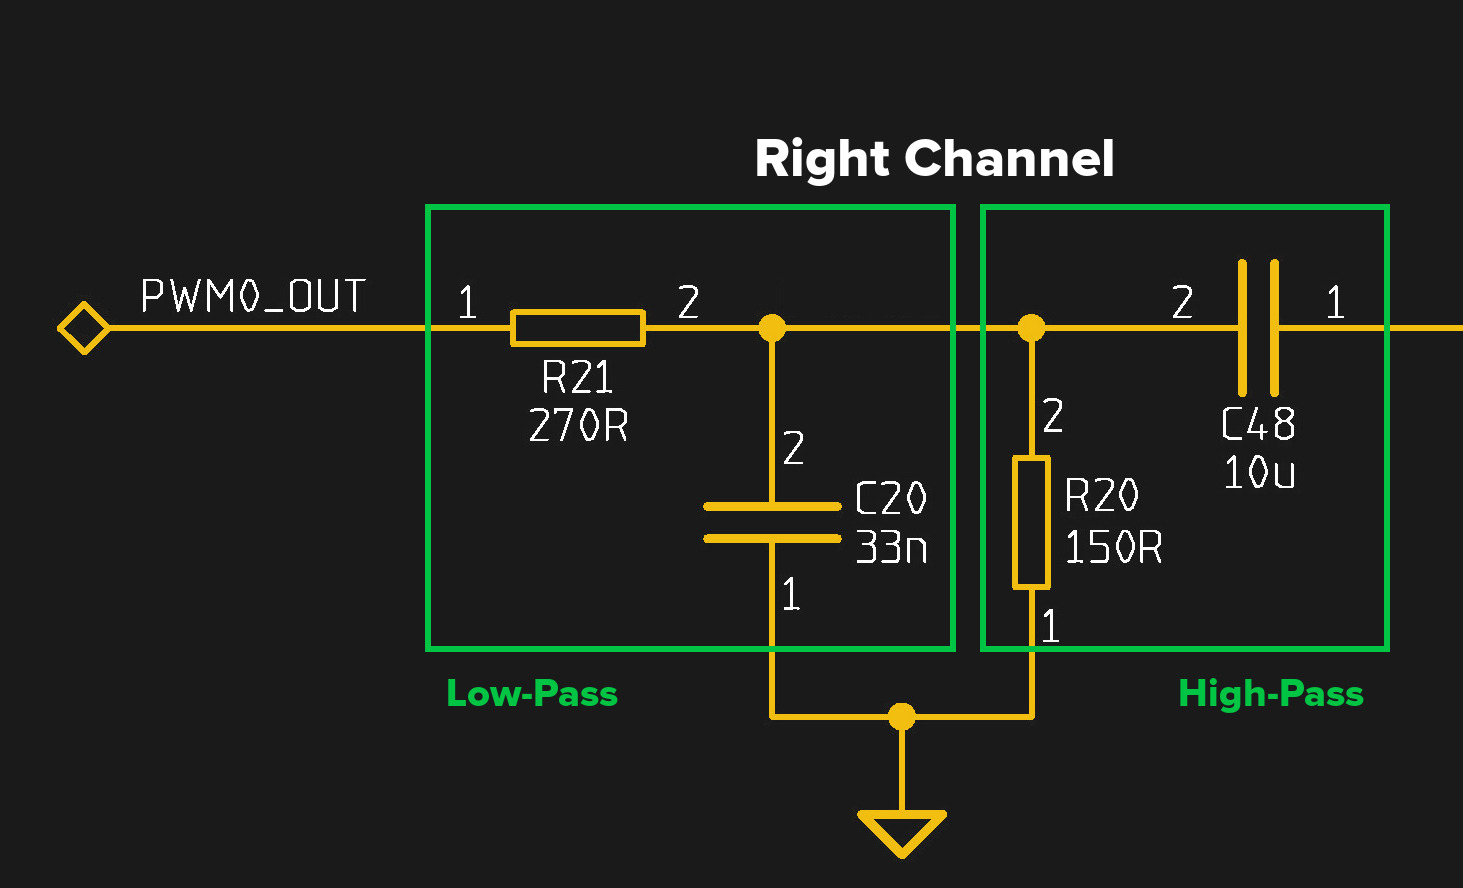 hight resolution of pwm which stands for pulse width modulation is an entirely digital way of representing an analogue value as a chain of pulses whose width is proportional